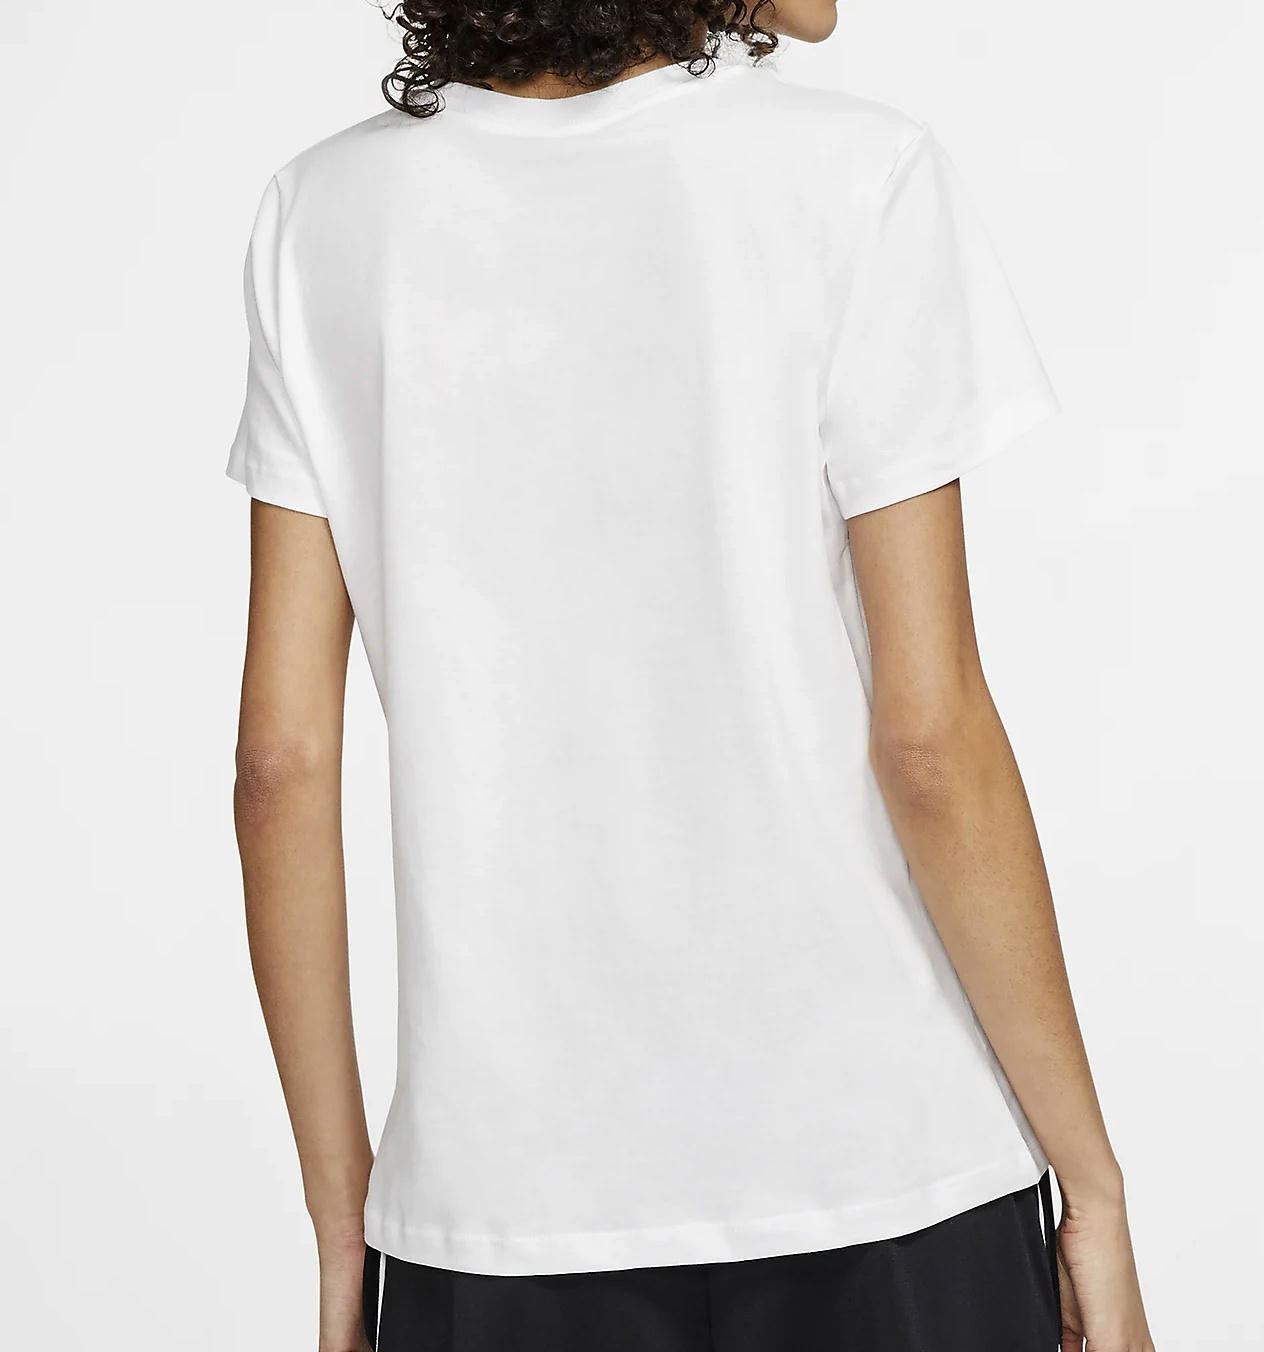 Camiseta Nike Tee Movel – Tee 3